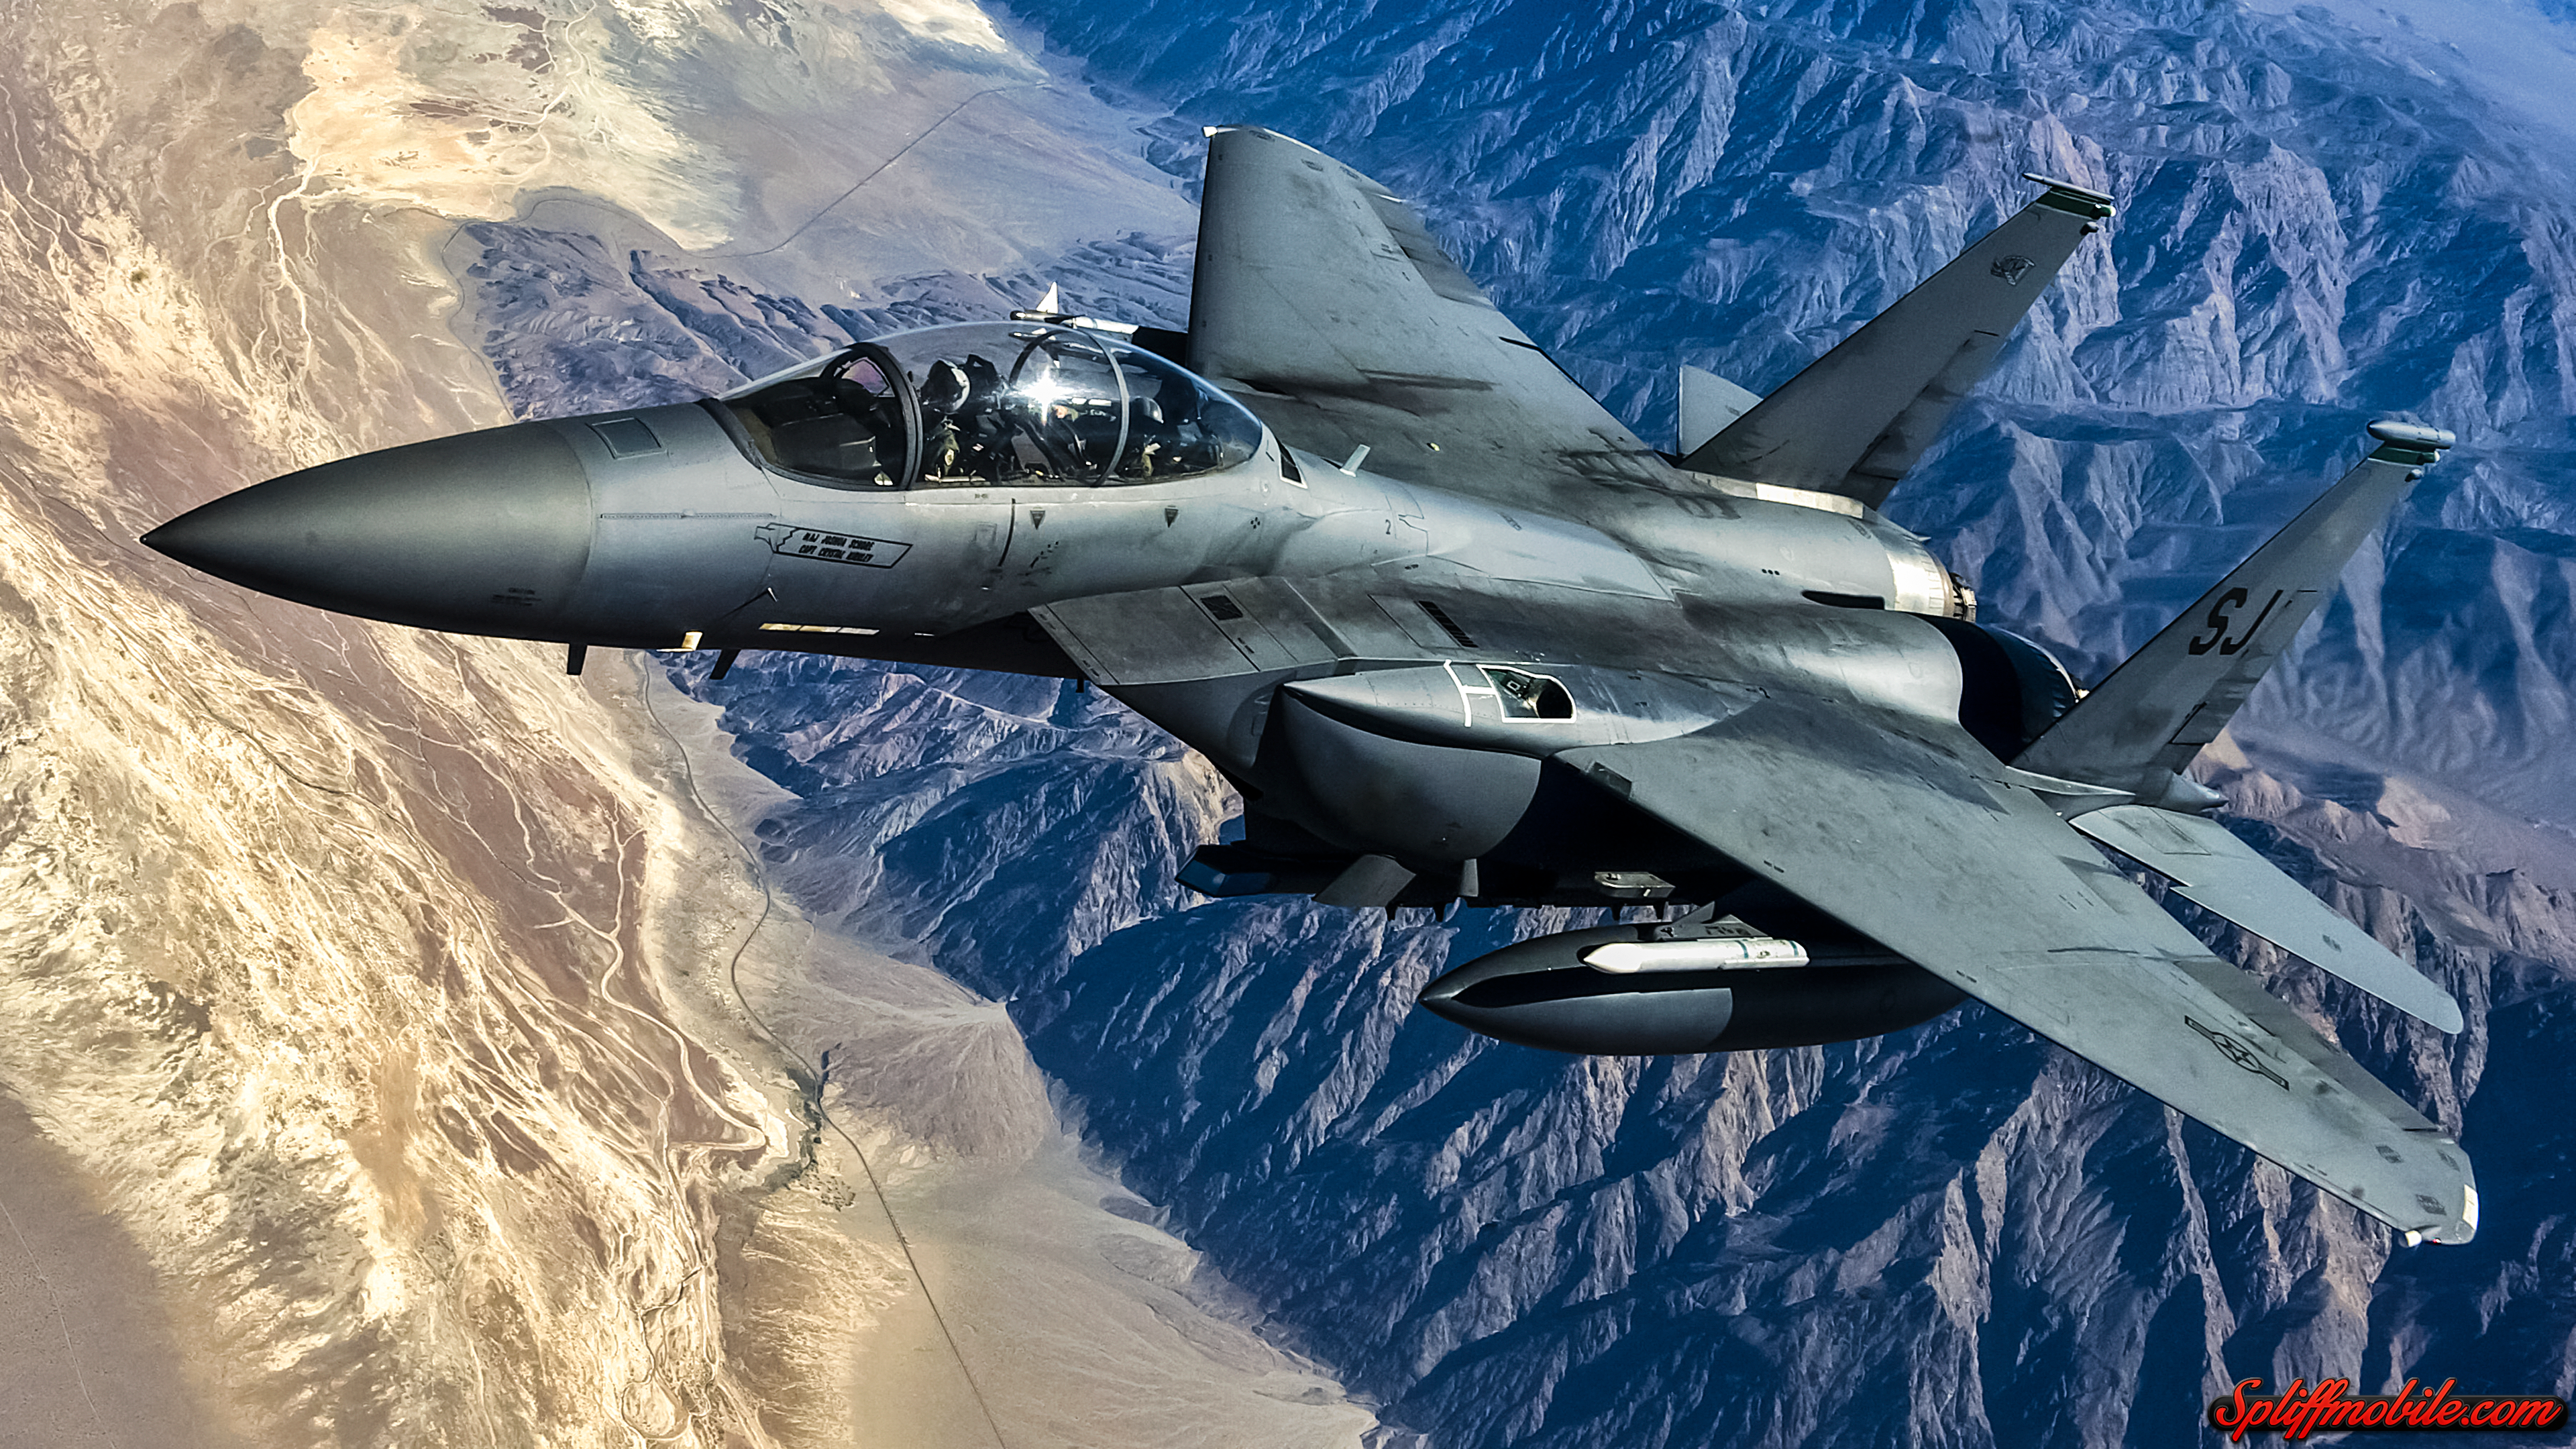 Collection of Jets Widescreen Wallpapers: 27389967, 3840x2160 px